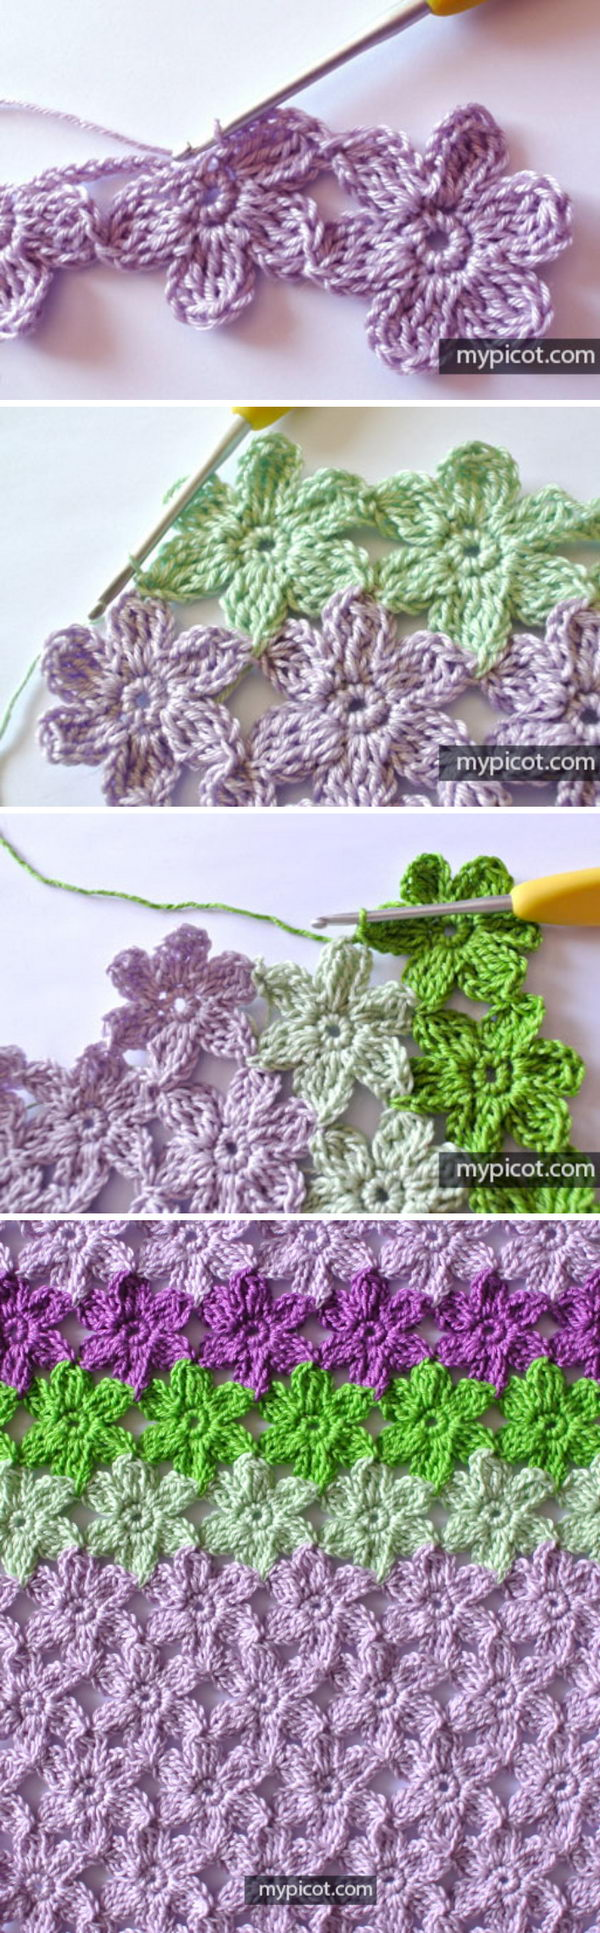 Crochet Joint Flower Stitch.